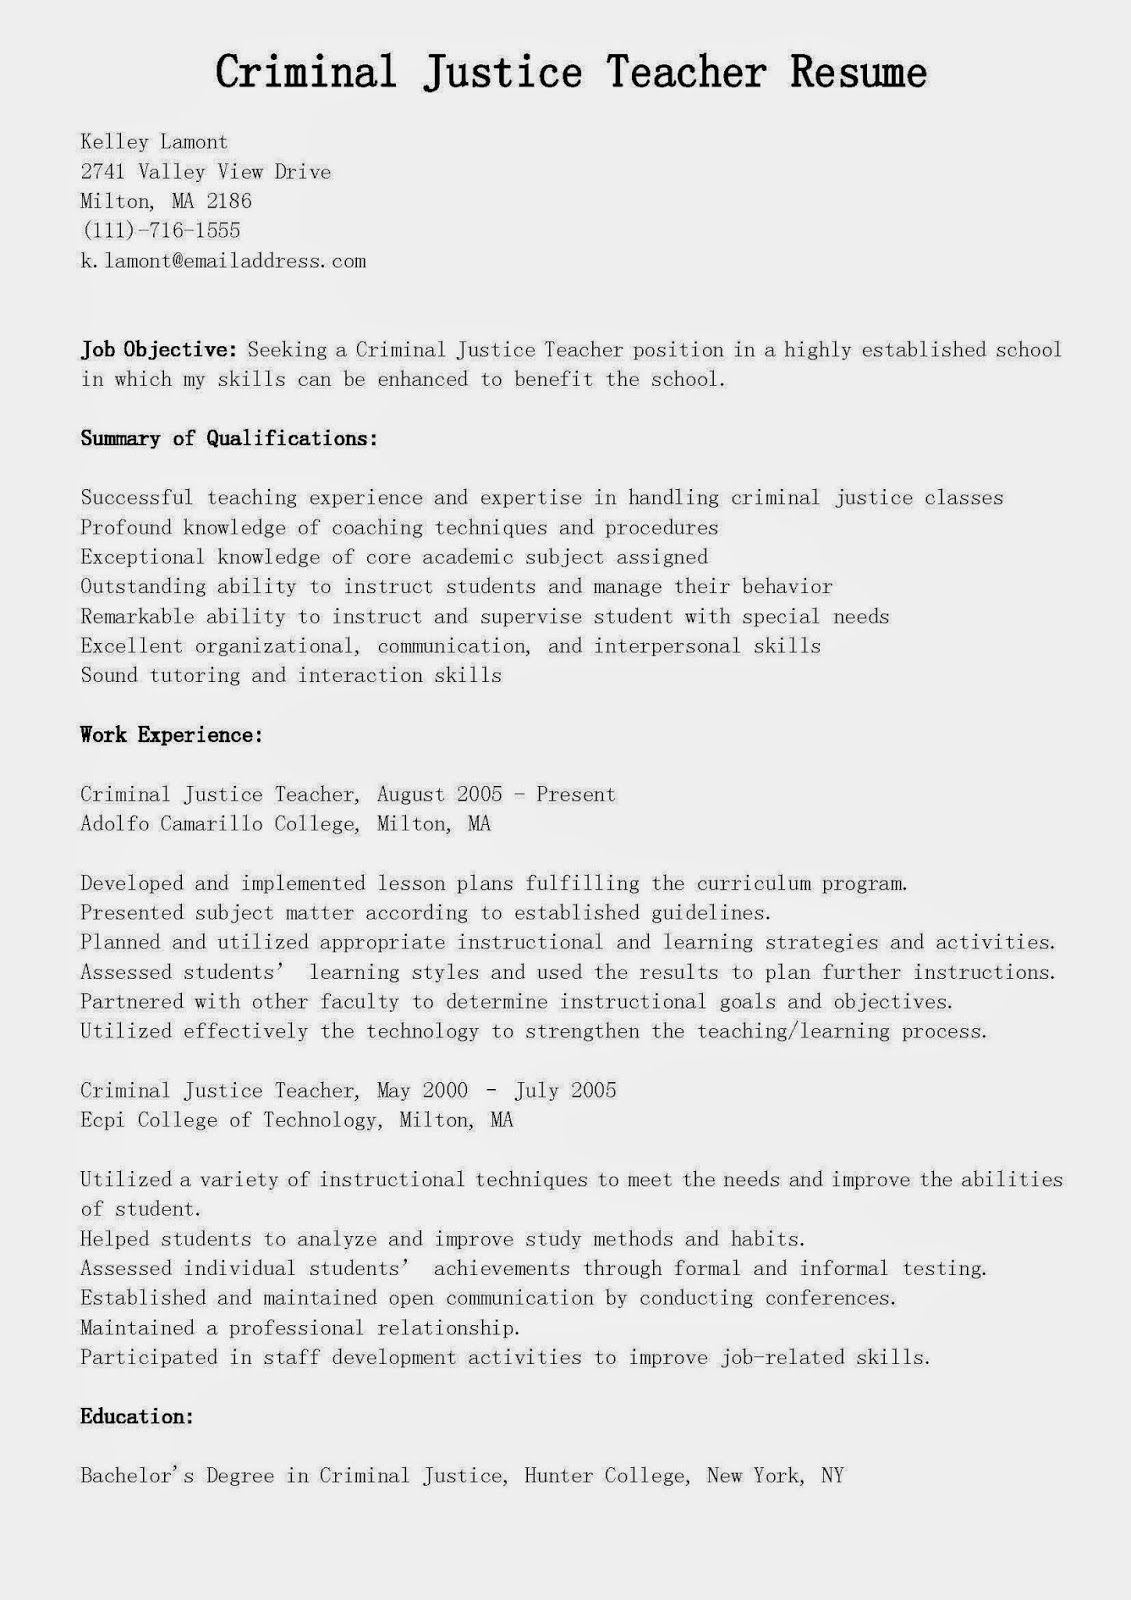 Beautiful 1 Year Experience Java Resume Format Small 100 Winning Resumes For Top Jobs Pdf Solid 11x17 Brochure Template 1300 Resume Selection Criteria Young 1920s Newspaper Template Pink2 Page Resume Templates Free Download Criminal Justice Resume | Resume Sample Format